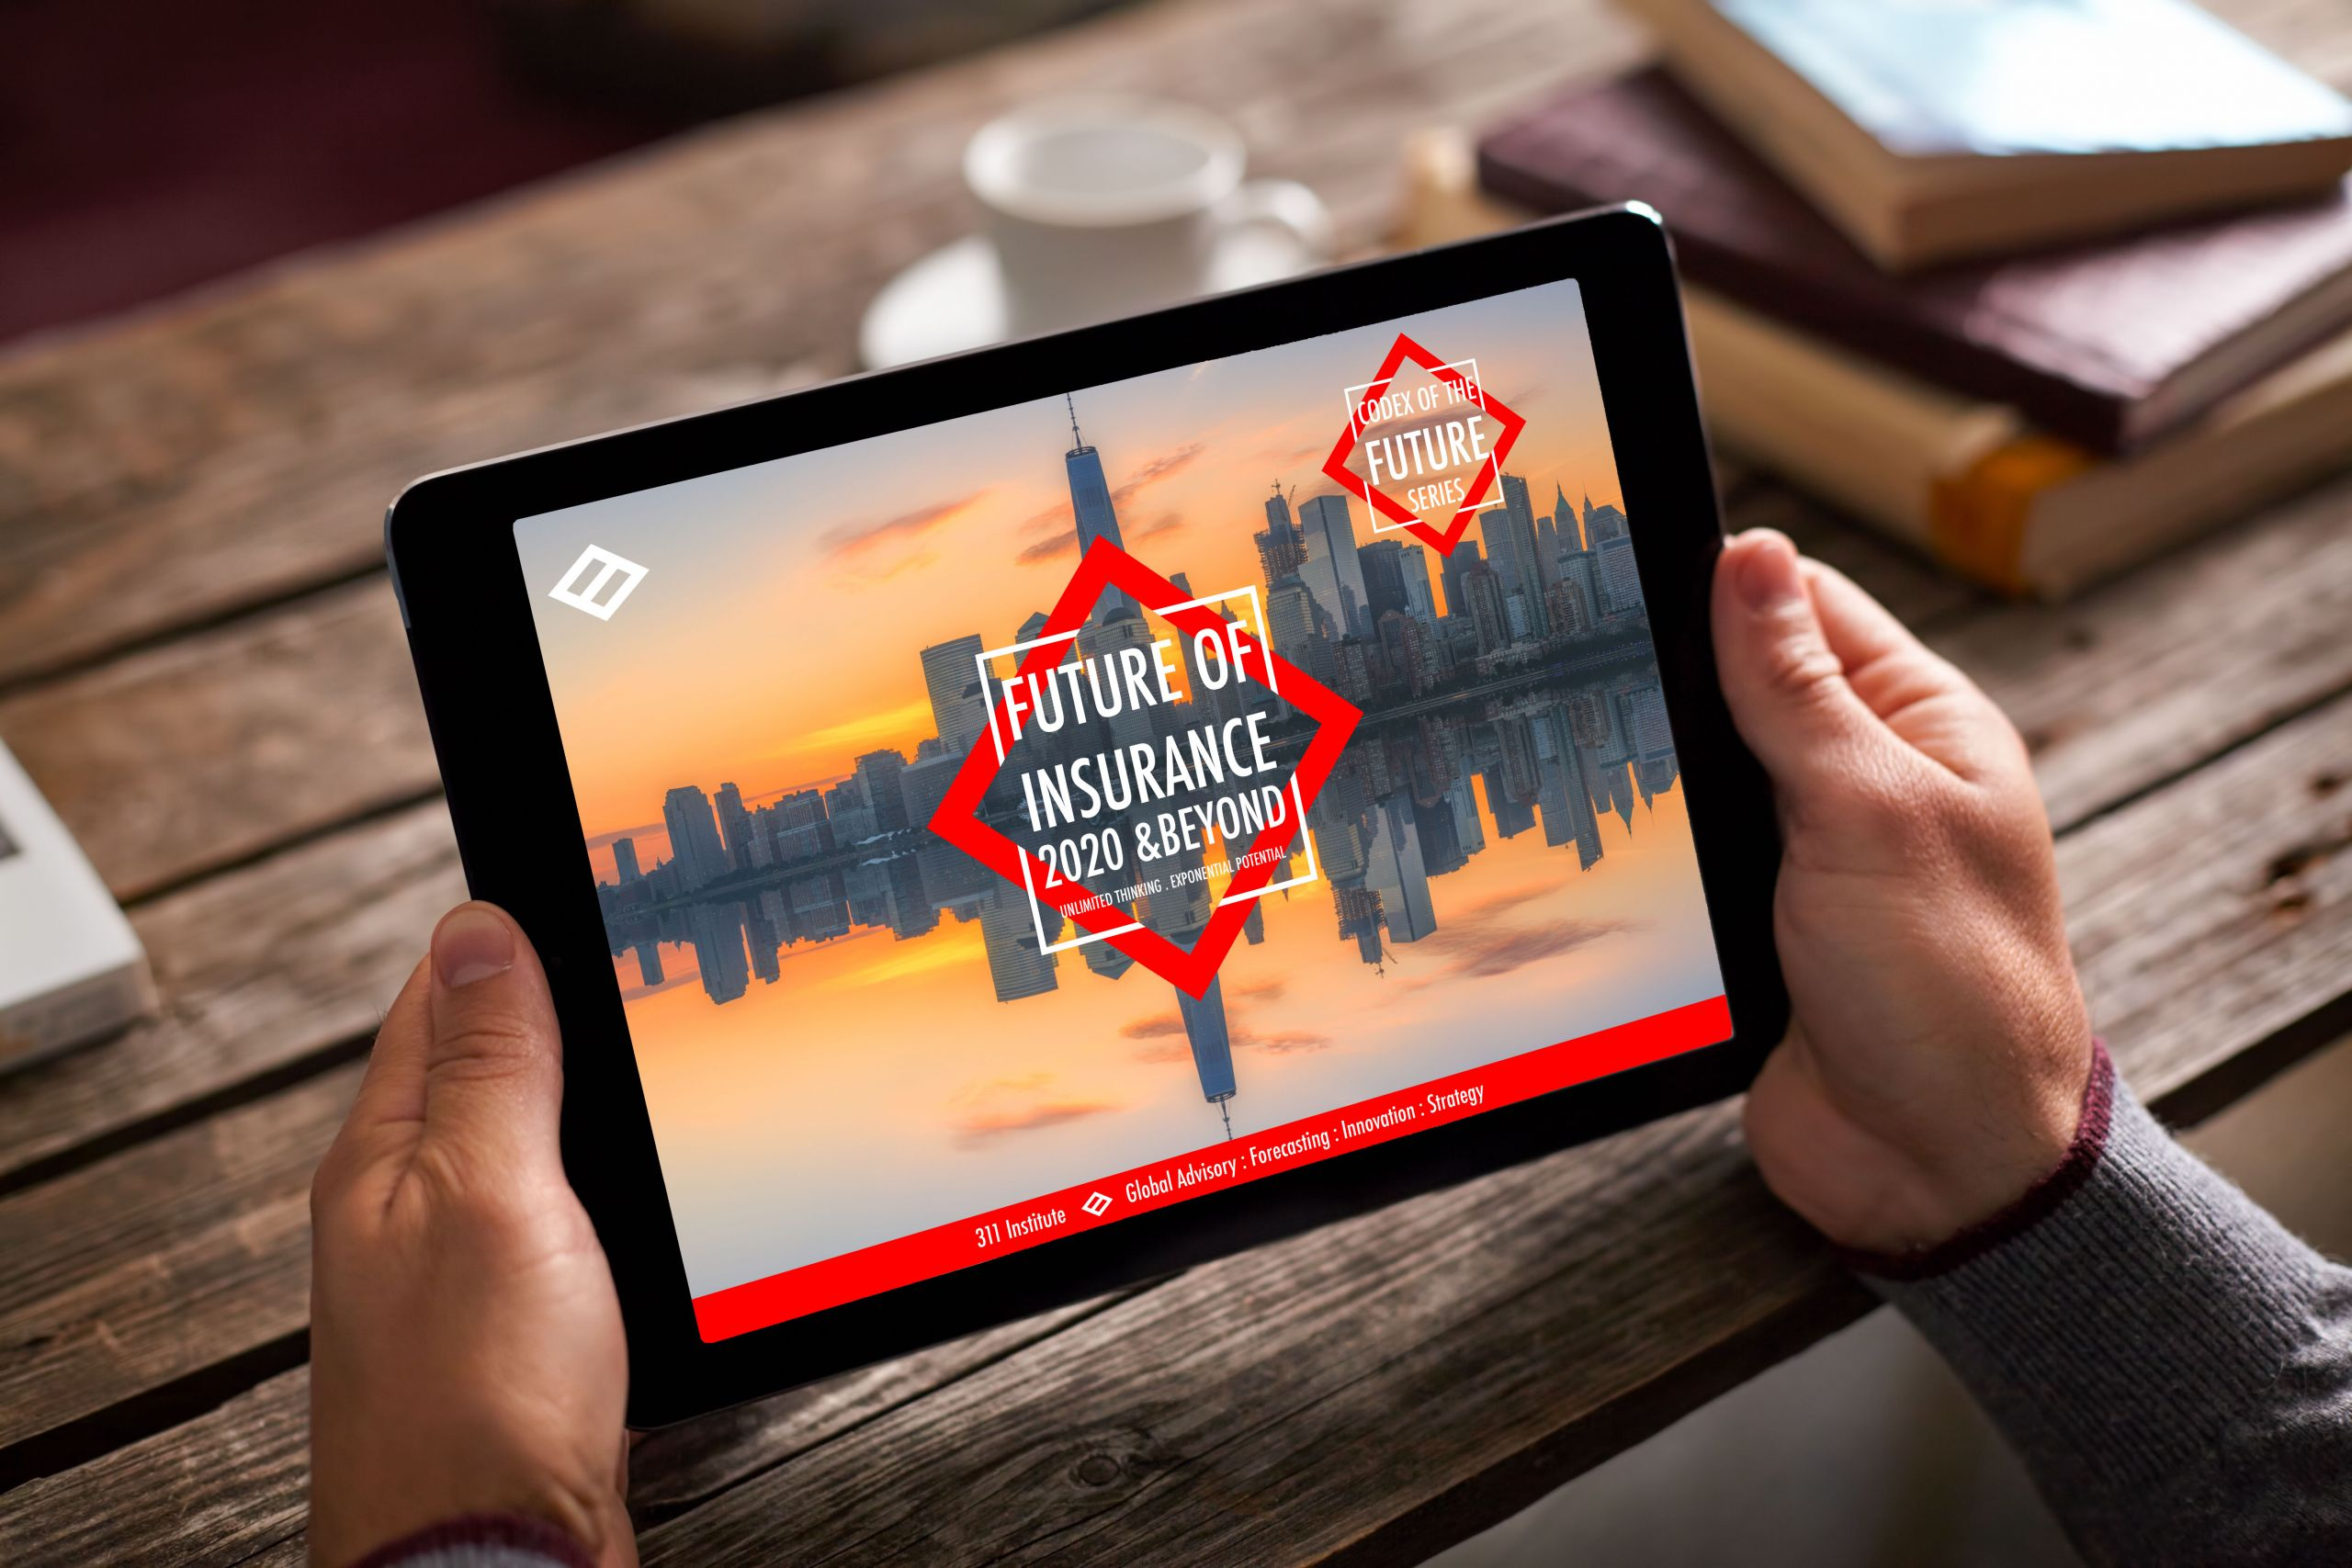 Future of Insurance On IPad